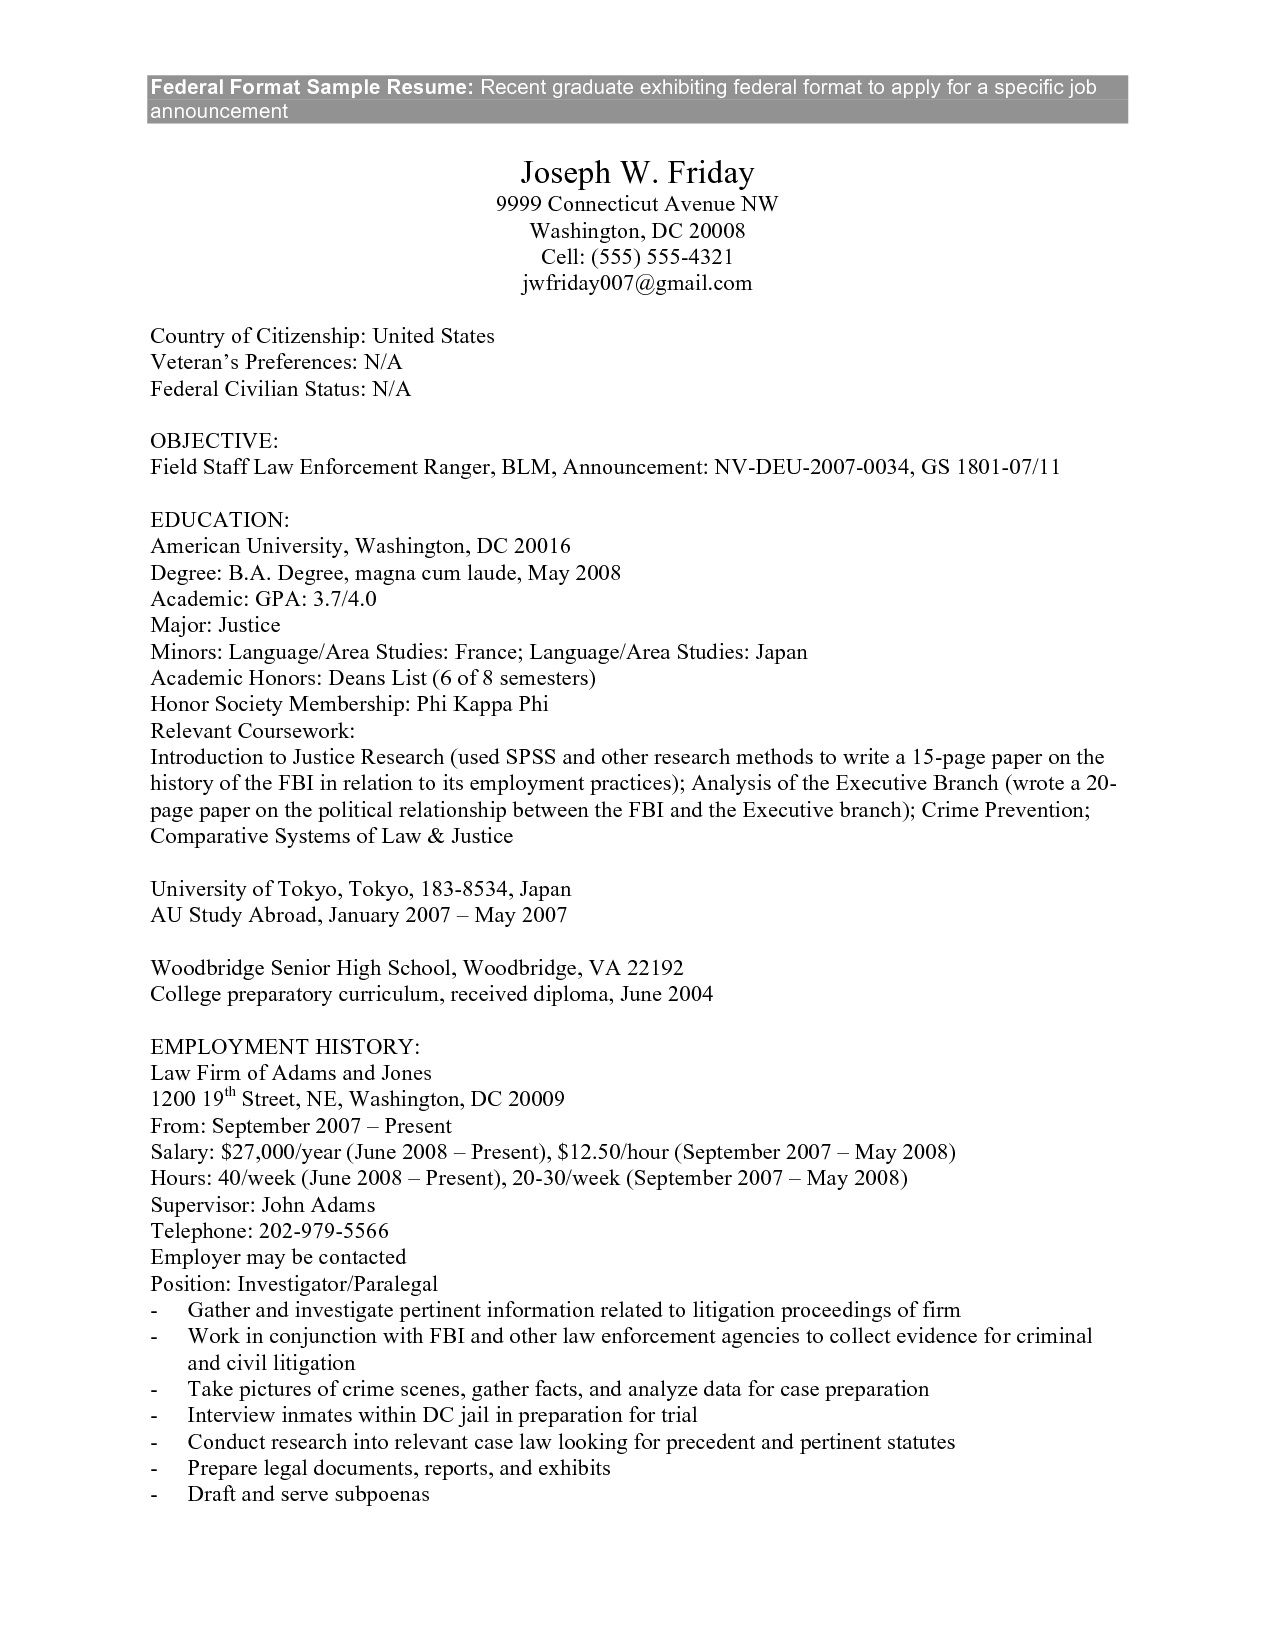 Resume Format For Federal Government Jobs - Equations Solver